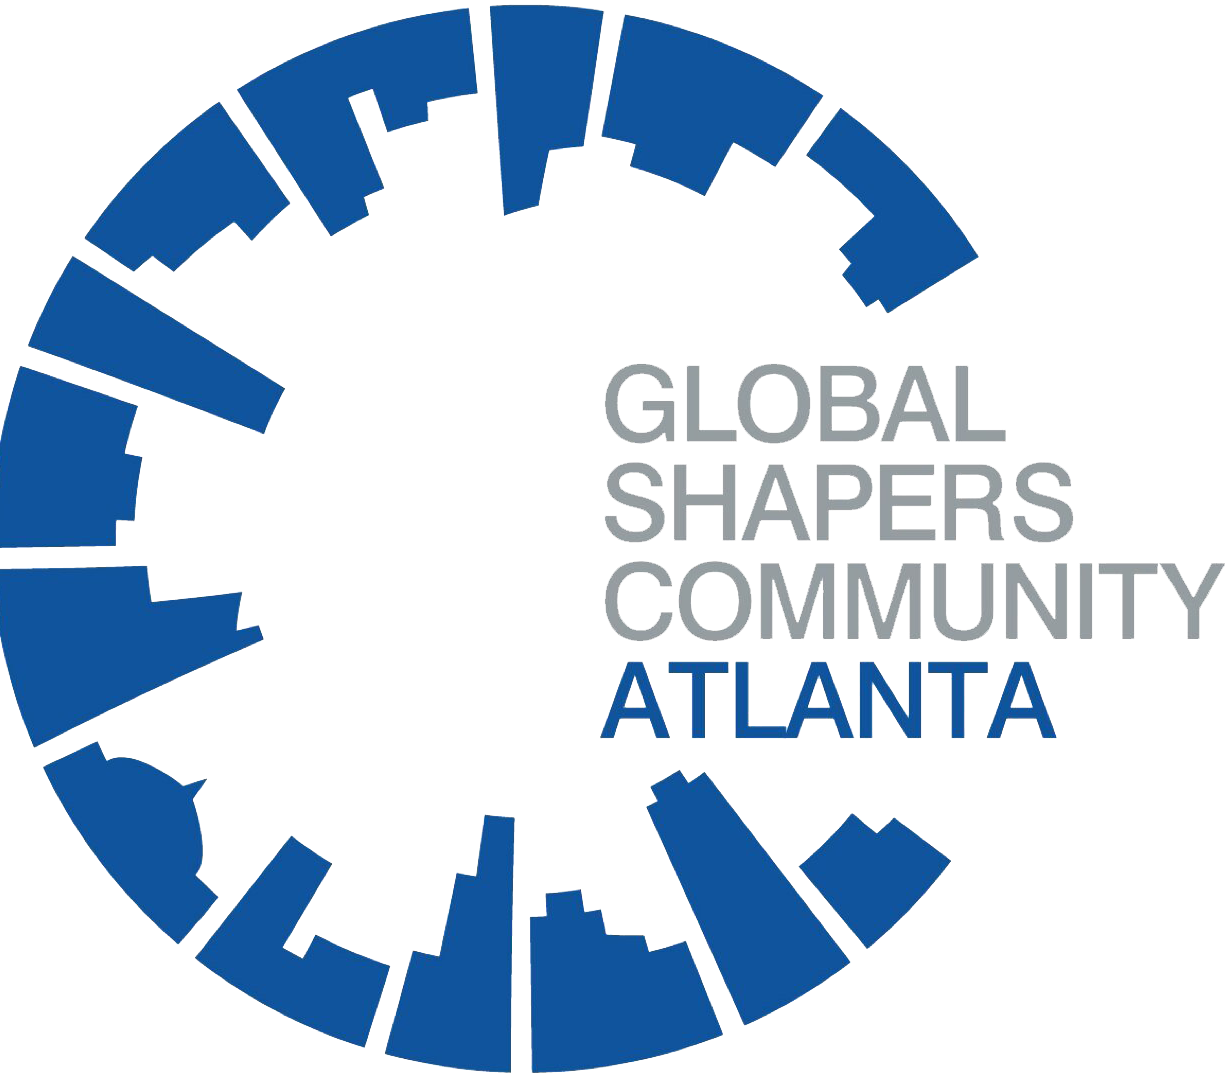 Atlanta Global Shapers